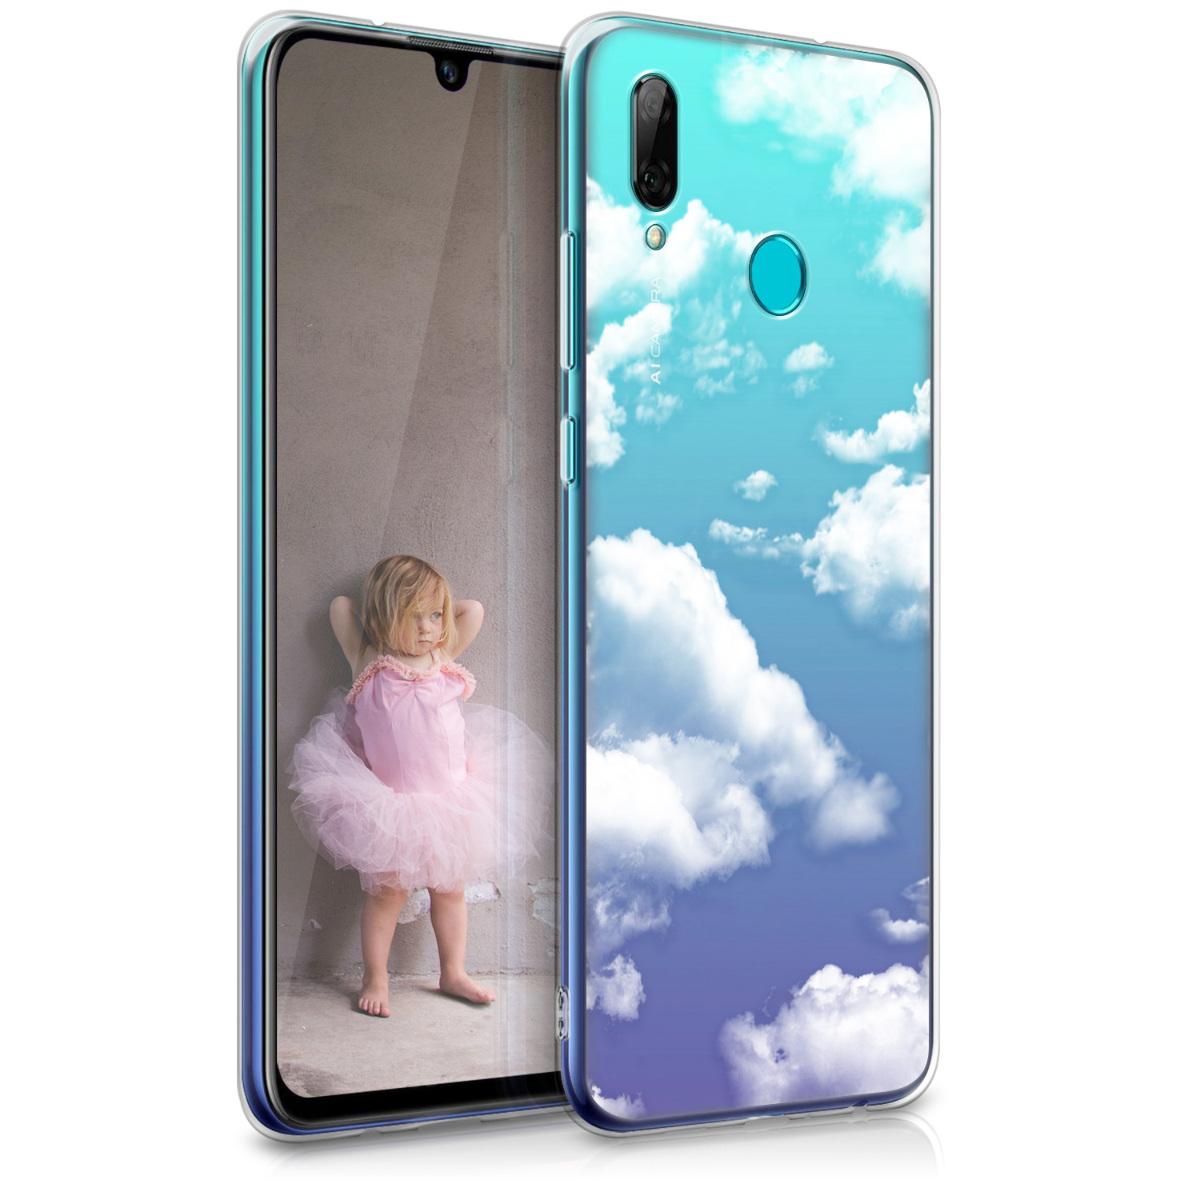 KW Θήκη Σιλικόνης Huawei P Smart 2019 - Bunch of Clouds - White / Transparent (47388.34)